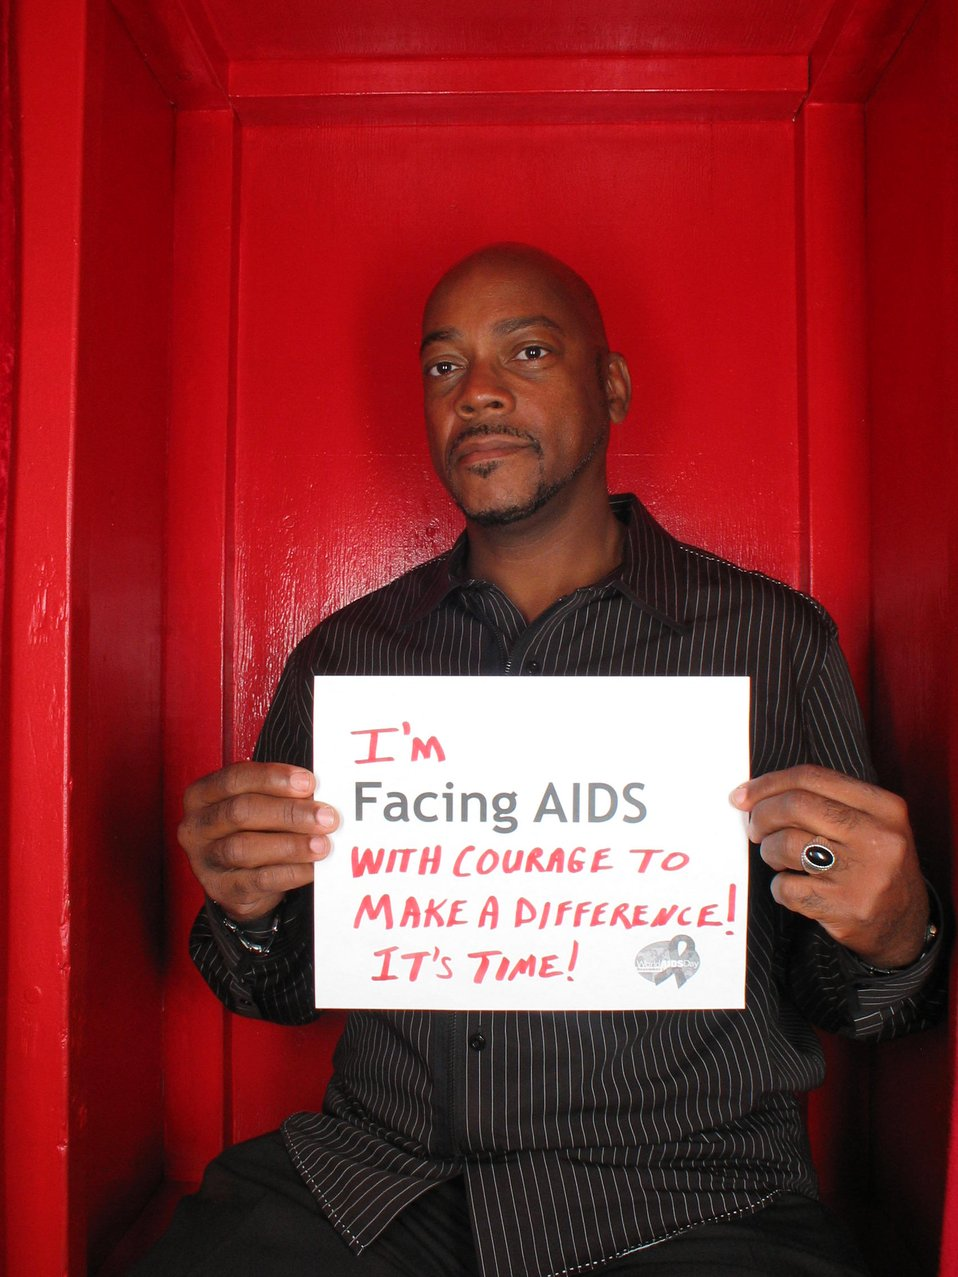 I'm Facing AIDS with courage to make a difference! It's time.